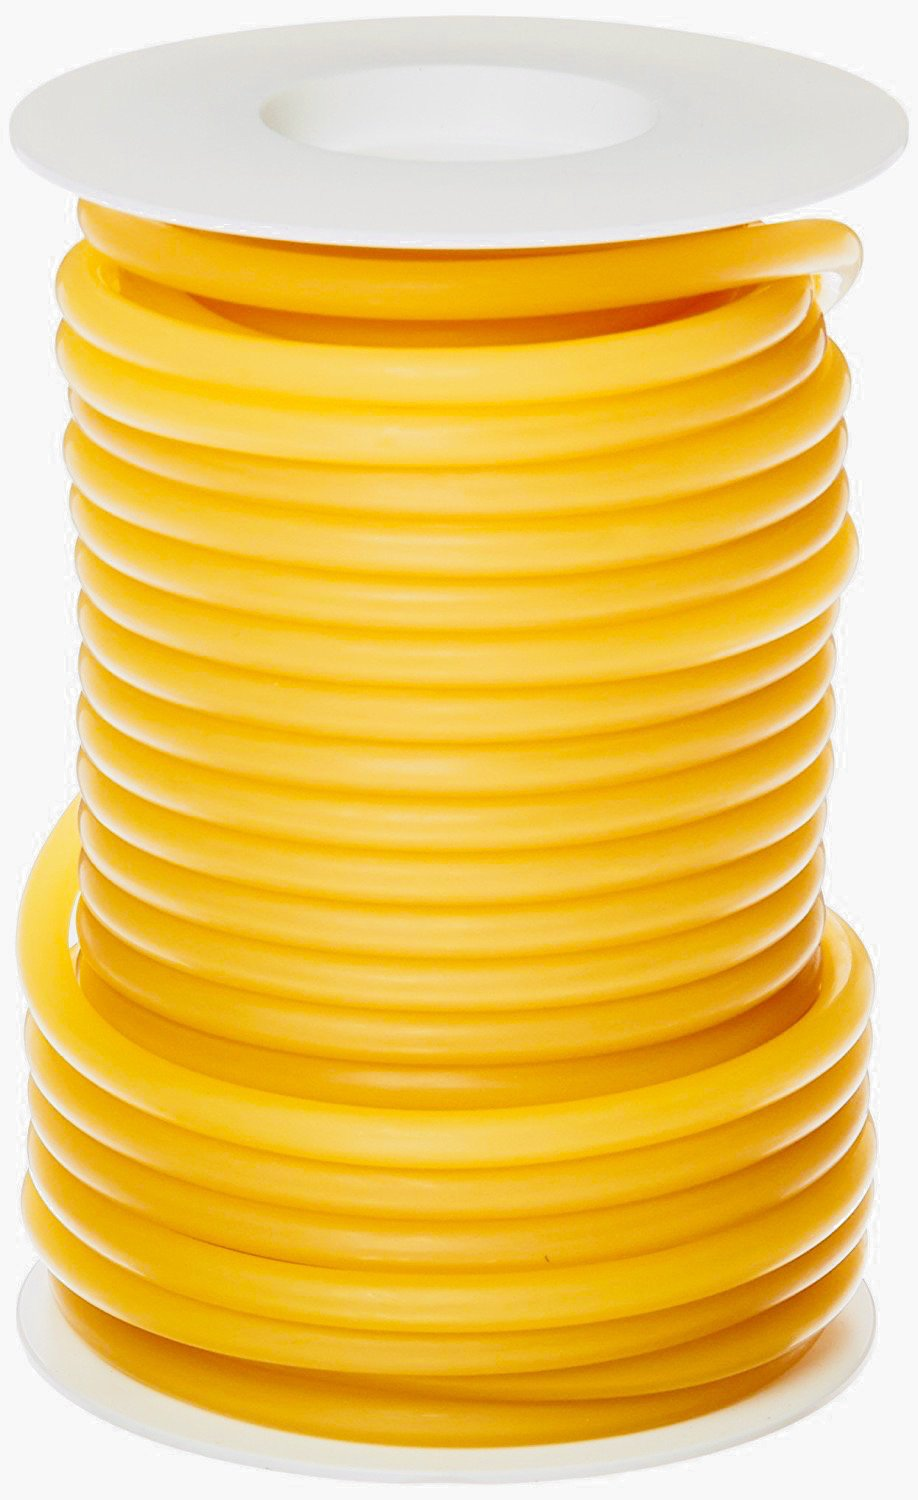 Pivit Flexible Seamless Natural Latex Rubber Band Tubing | 1/4'' ID, 5/16'' OD, 1/32'' Wall Thickness | 50ft One Continuous Length | Extreme Flexibility, Durability & Elastic Stretch Memory | Made in USA by pivit